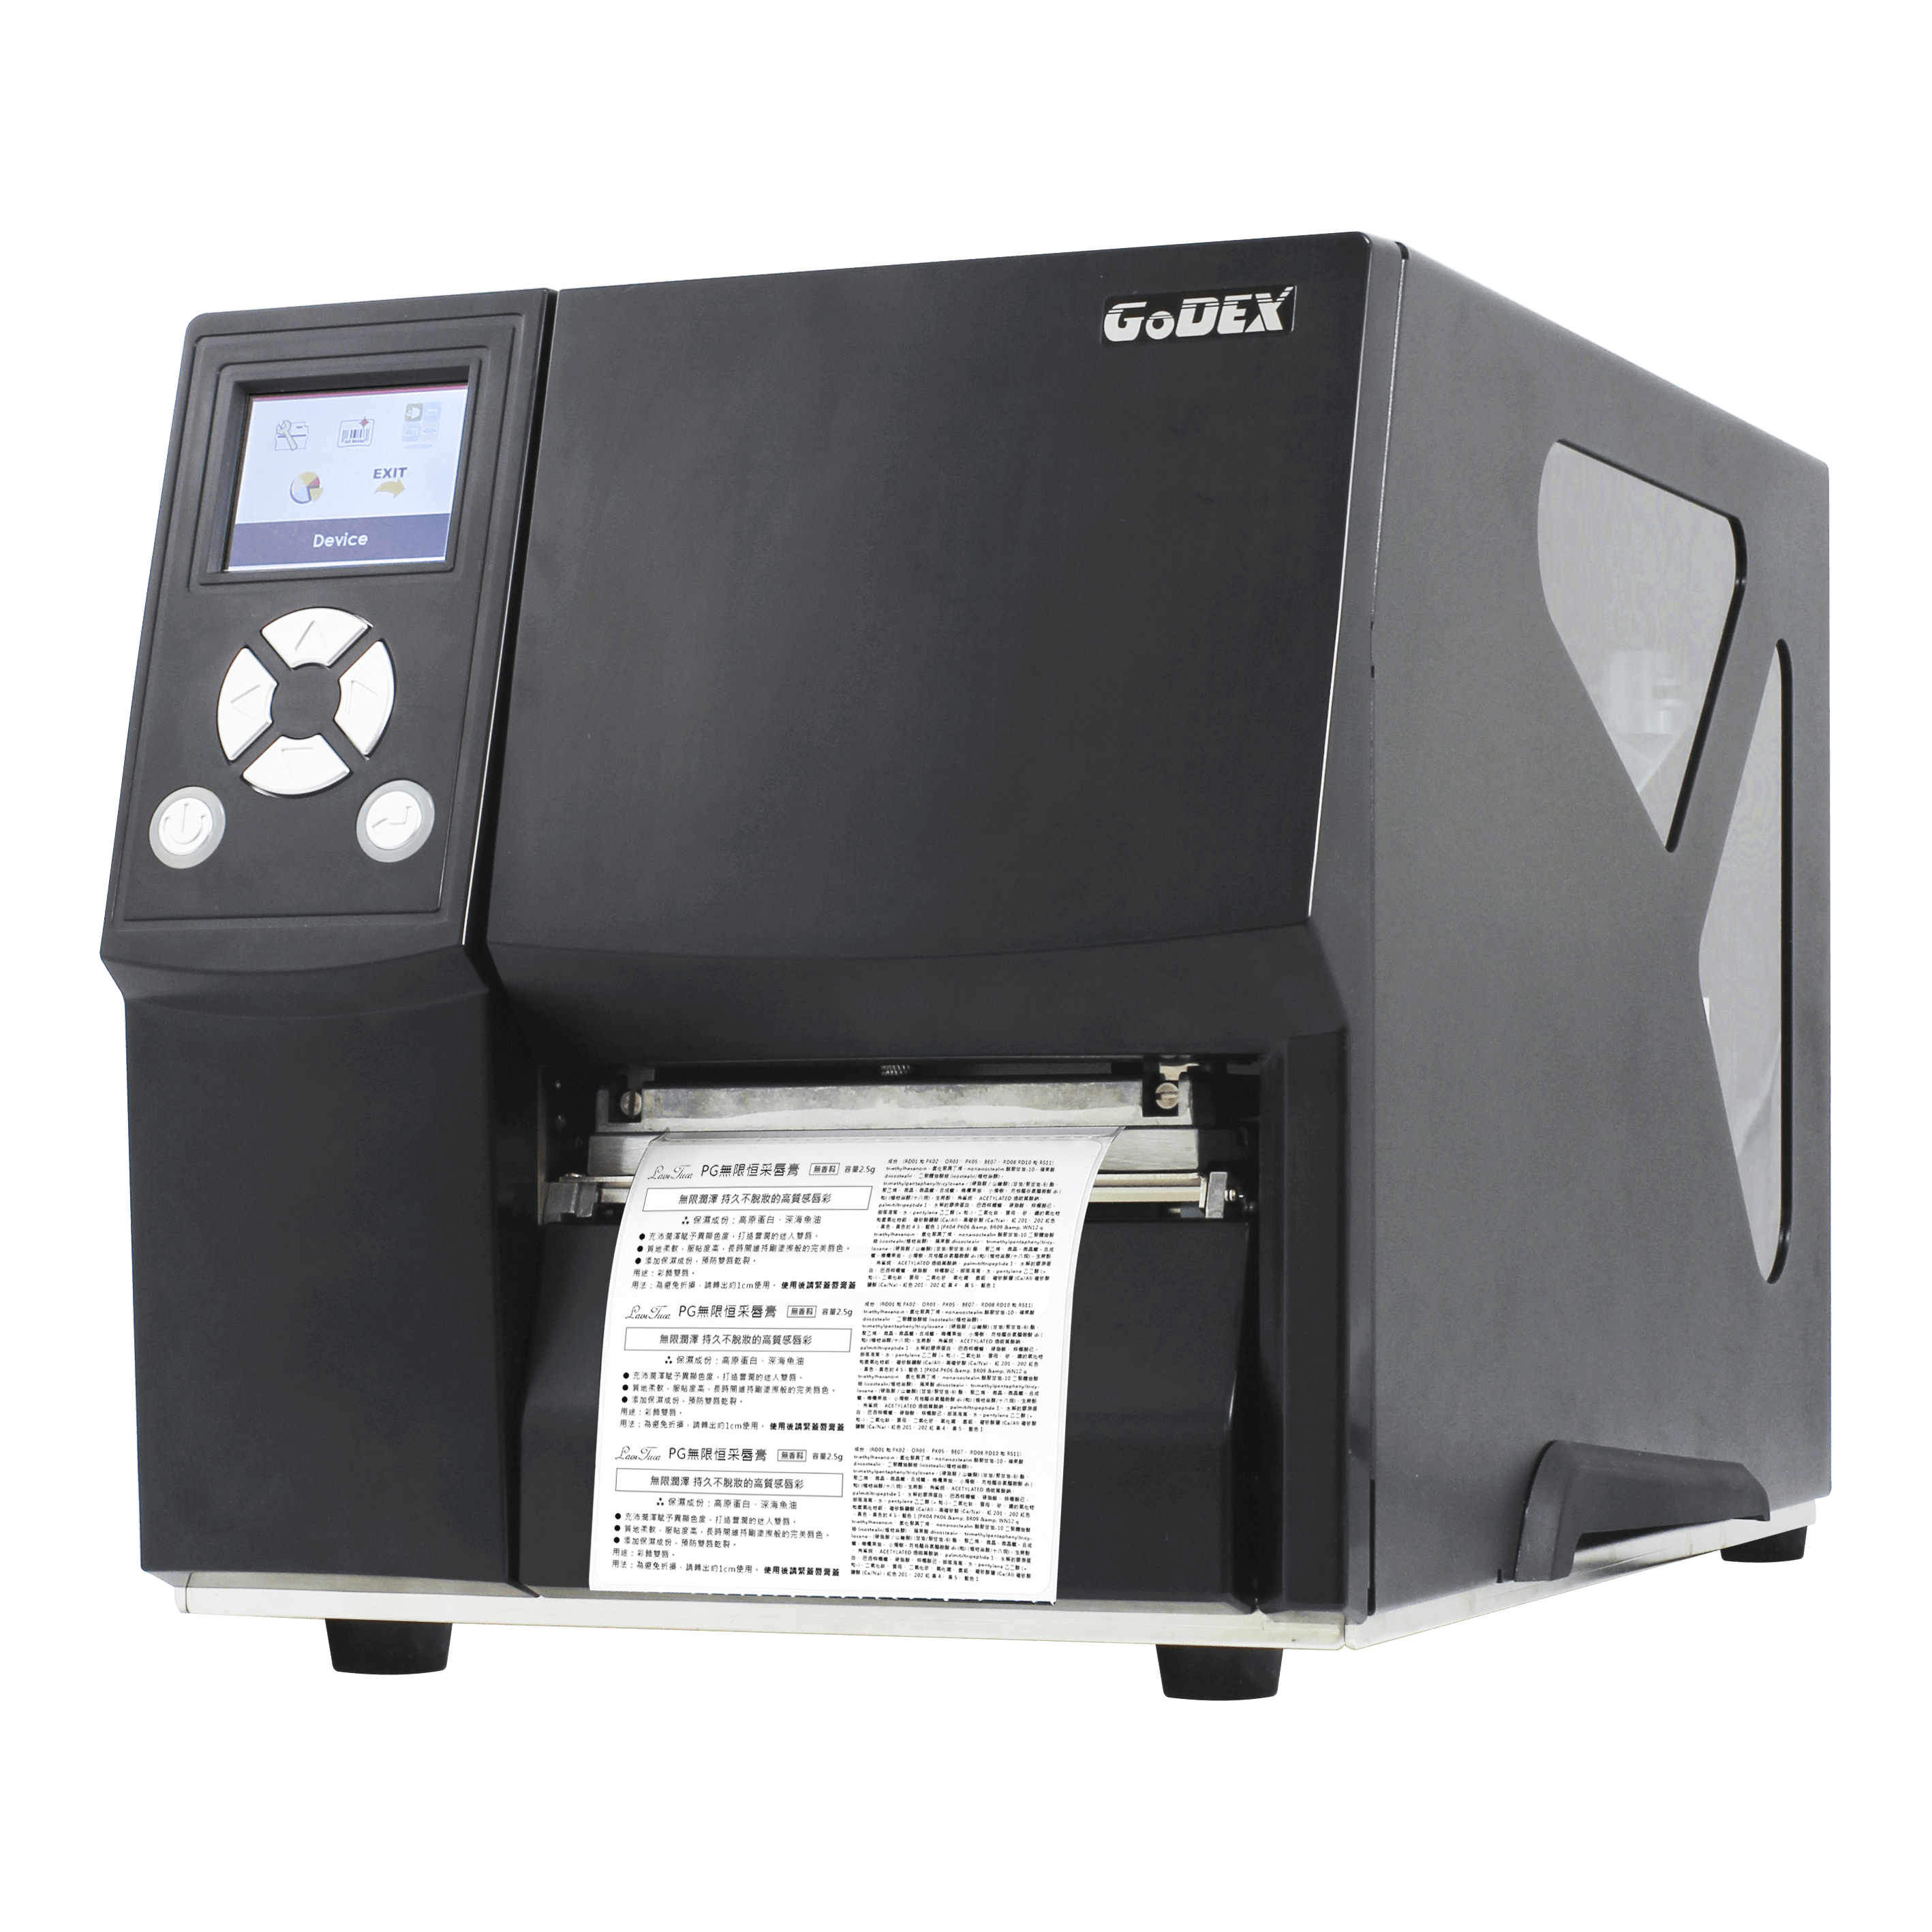 Godex G500 labelprinter